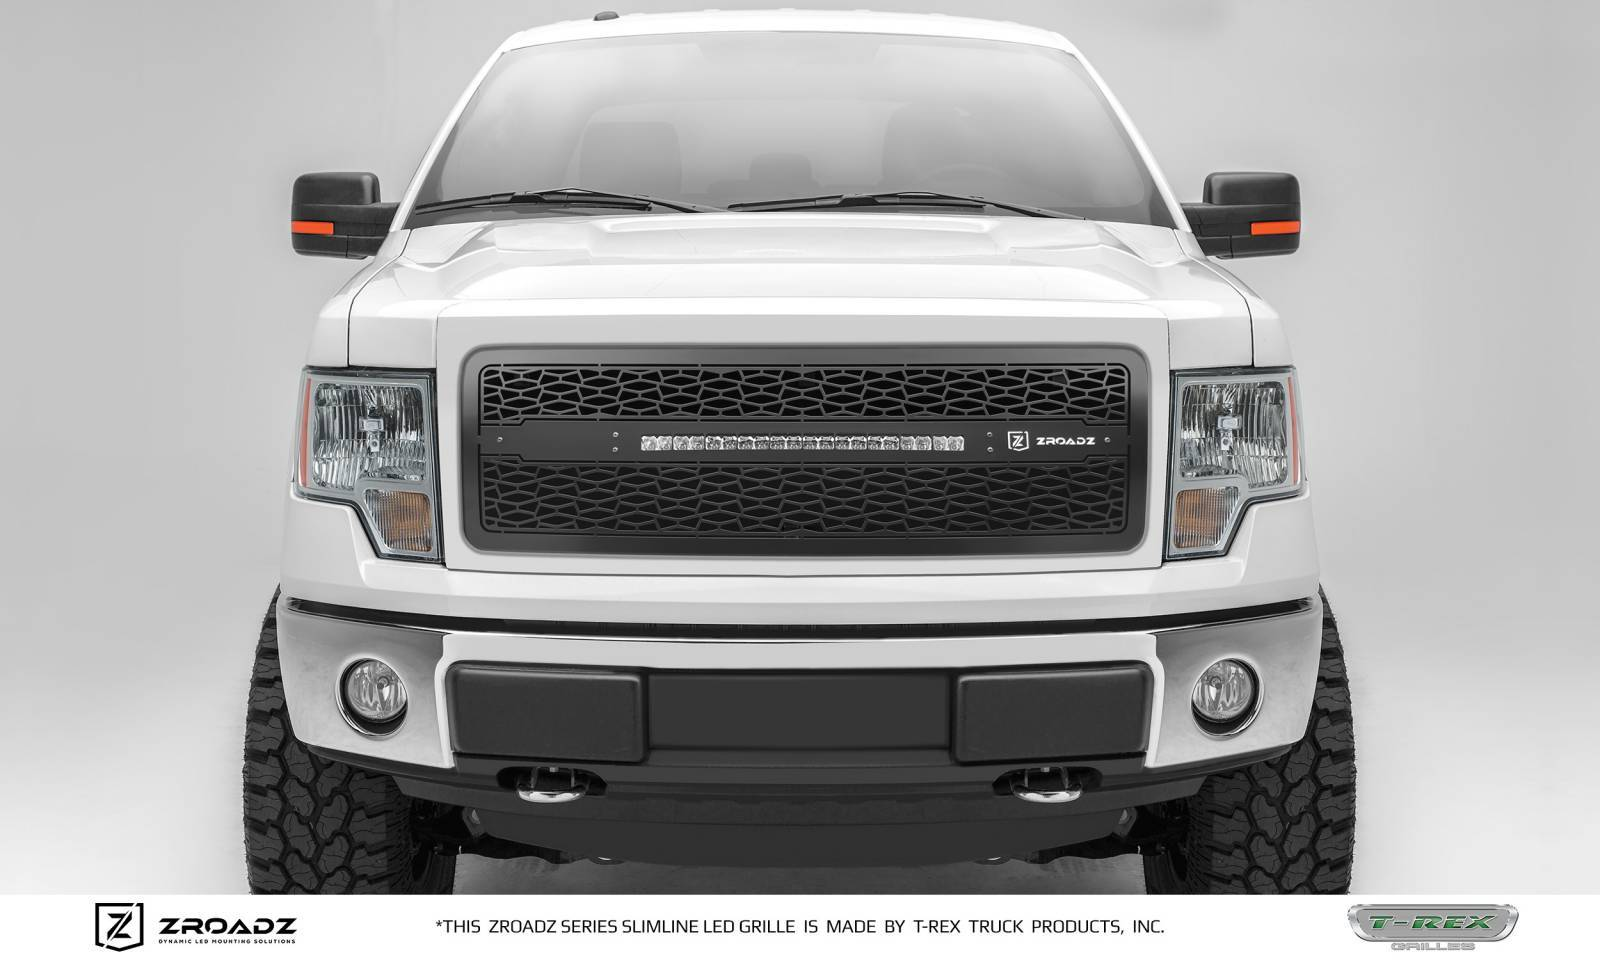 T-REX Ford F150 - ZROADZ Series - Main Insert - Grille w/ One 20 Inch Slim Line Single Row LED Light Bar - Includes Universal Wiring Harness - Part# Z315681